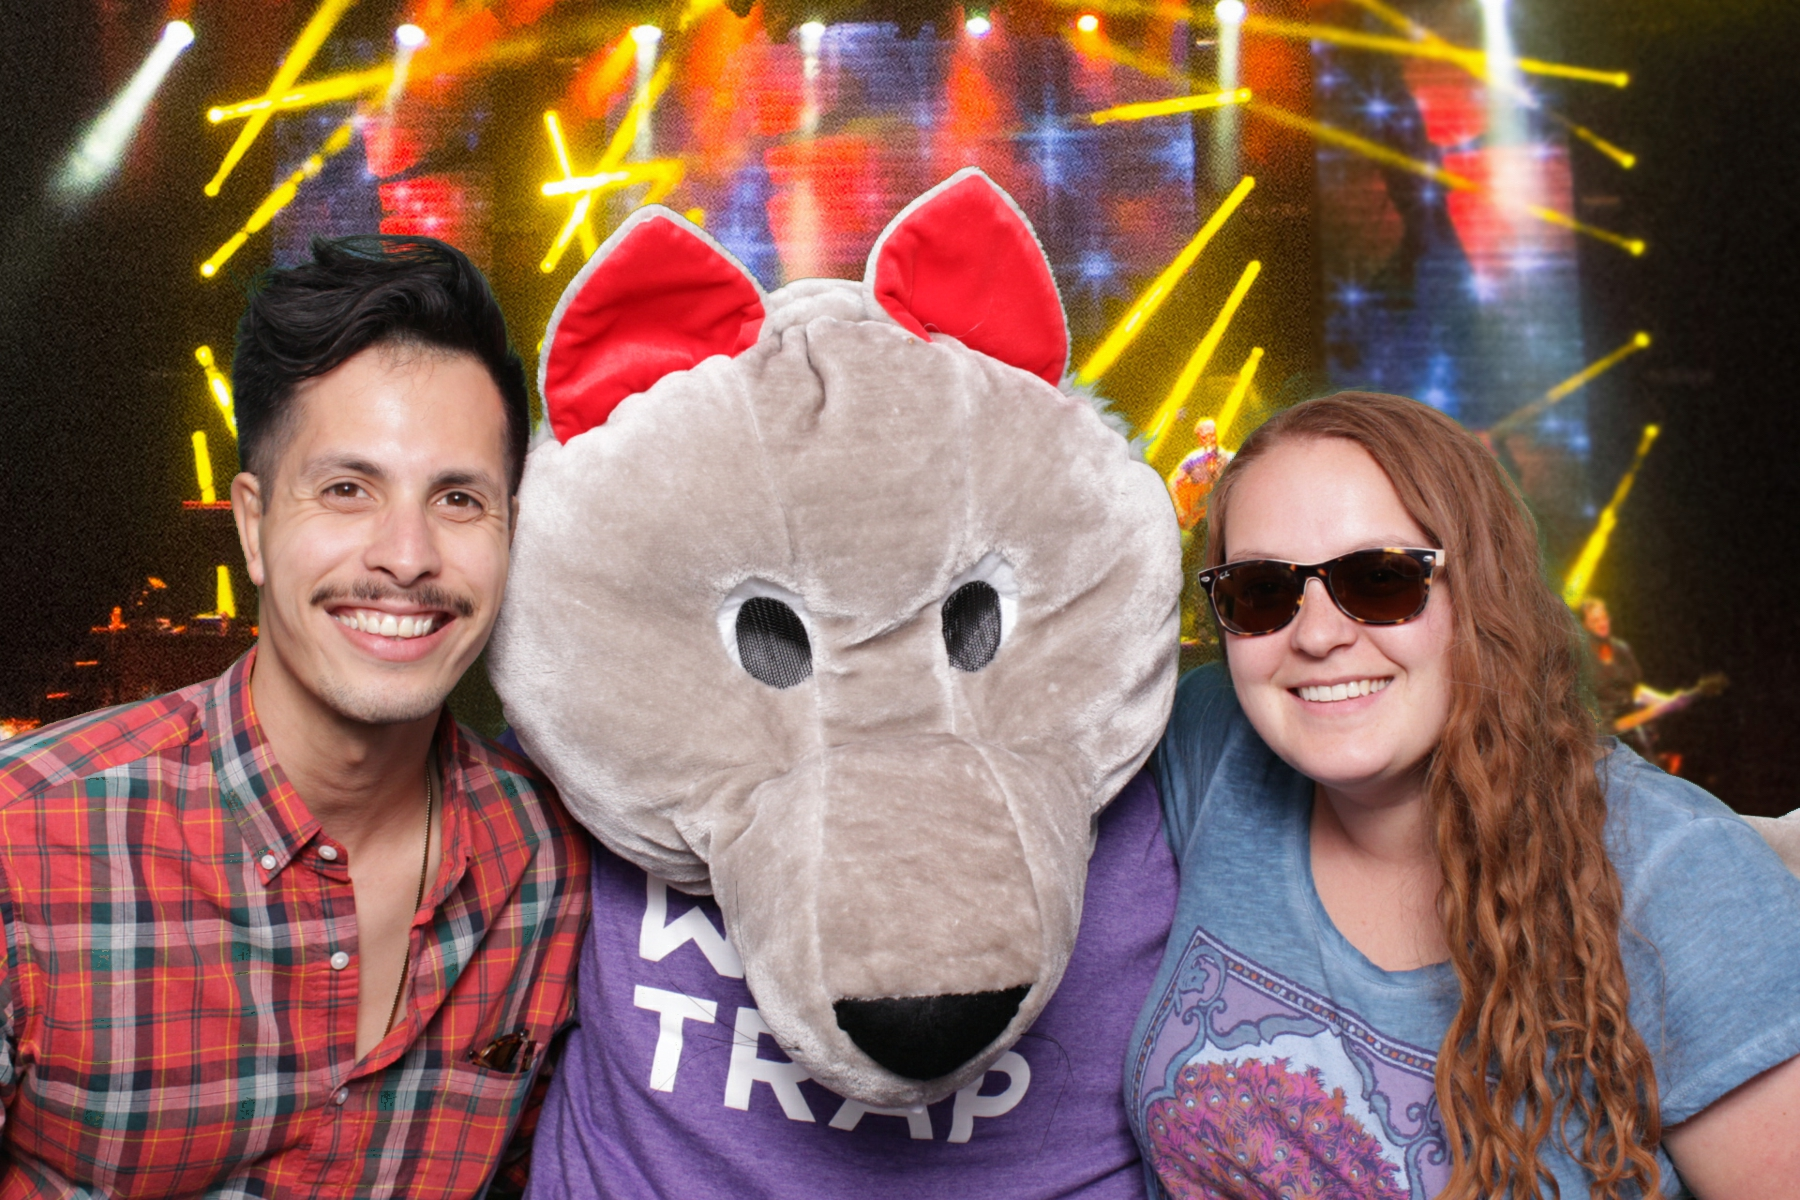 WOLF TRAP | KOOL AND THE GANG | HOT PINK PHOTO BOOTH